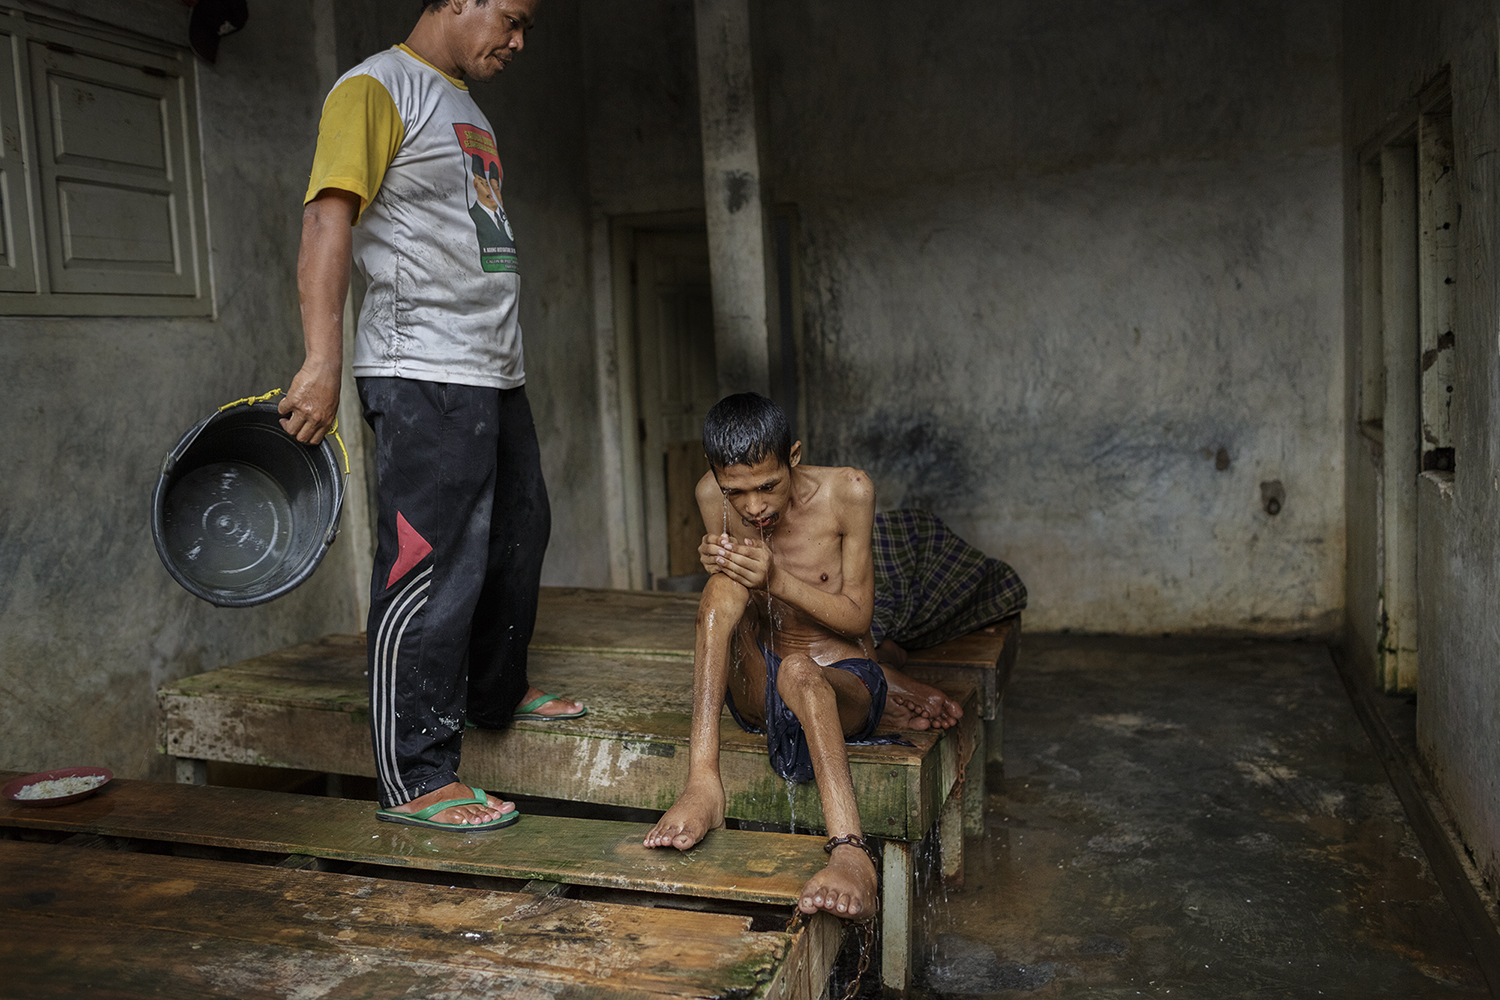 Mustofa, the sole assistant and primary caregiver at Kyai Syamsul's family-run shelter, gives a shower to Akrom, 25 years old.